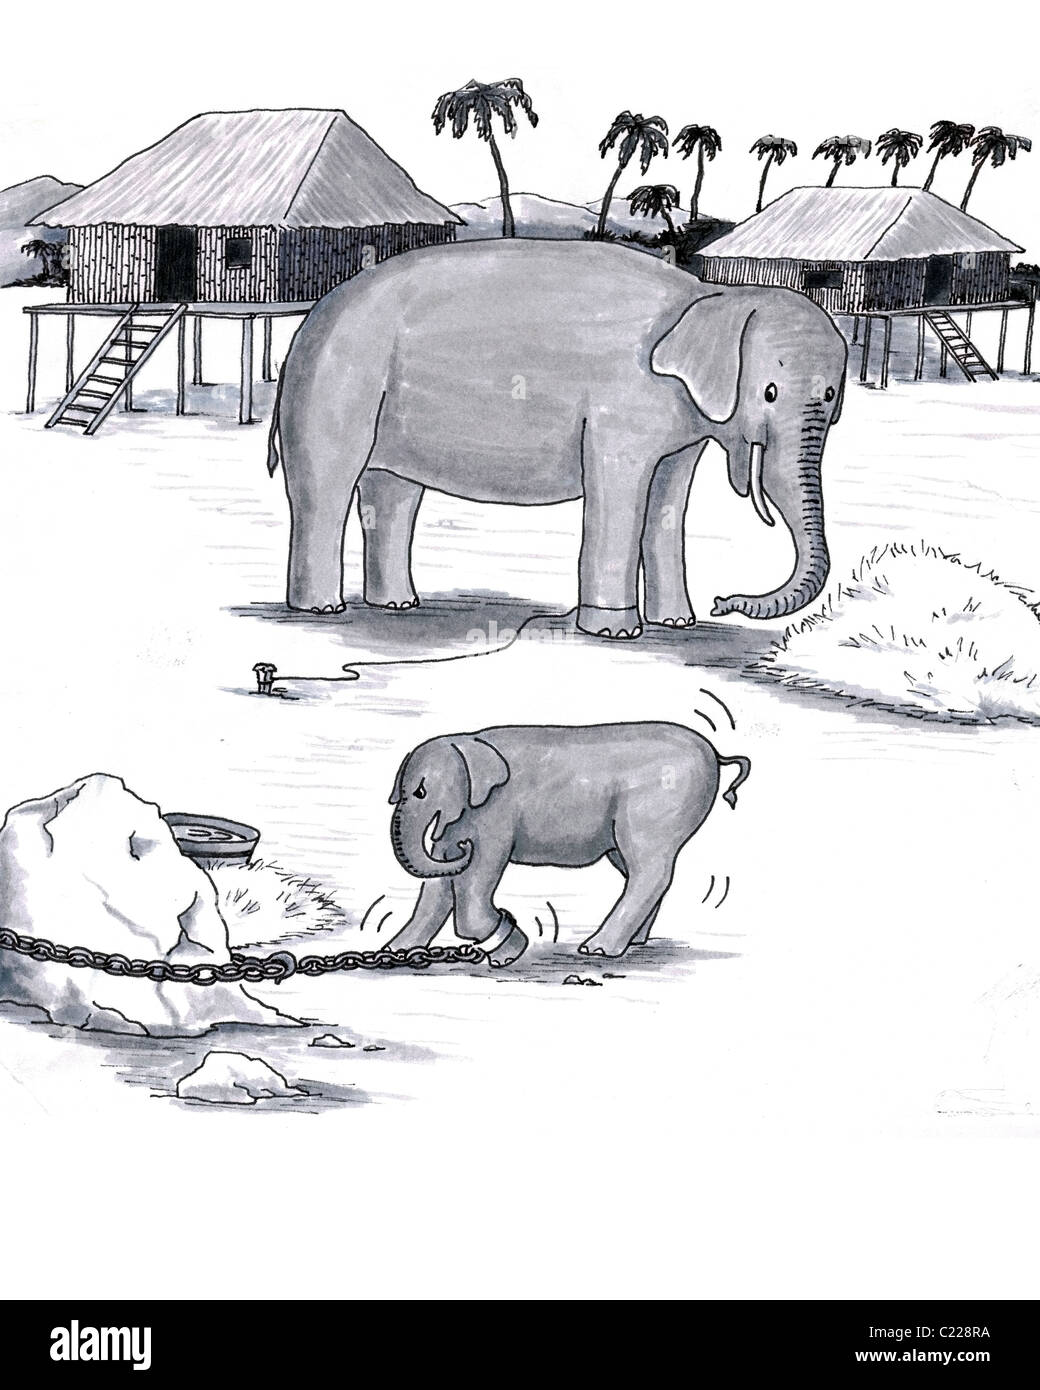 Older and younger pachyderm; baby attached to heavy chain, adult trained to stay with just rope. Hand drawn art - Stock Image